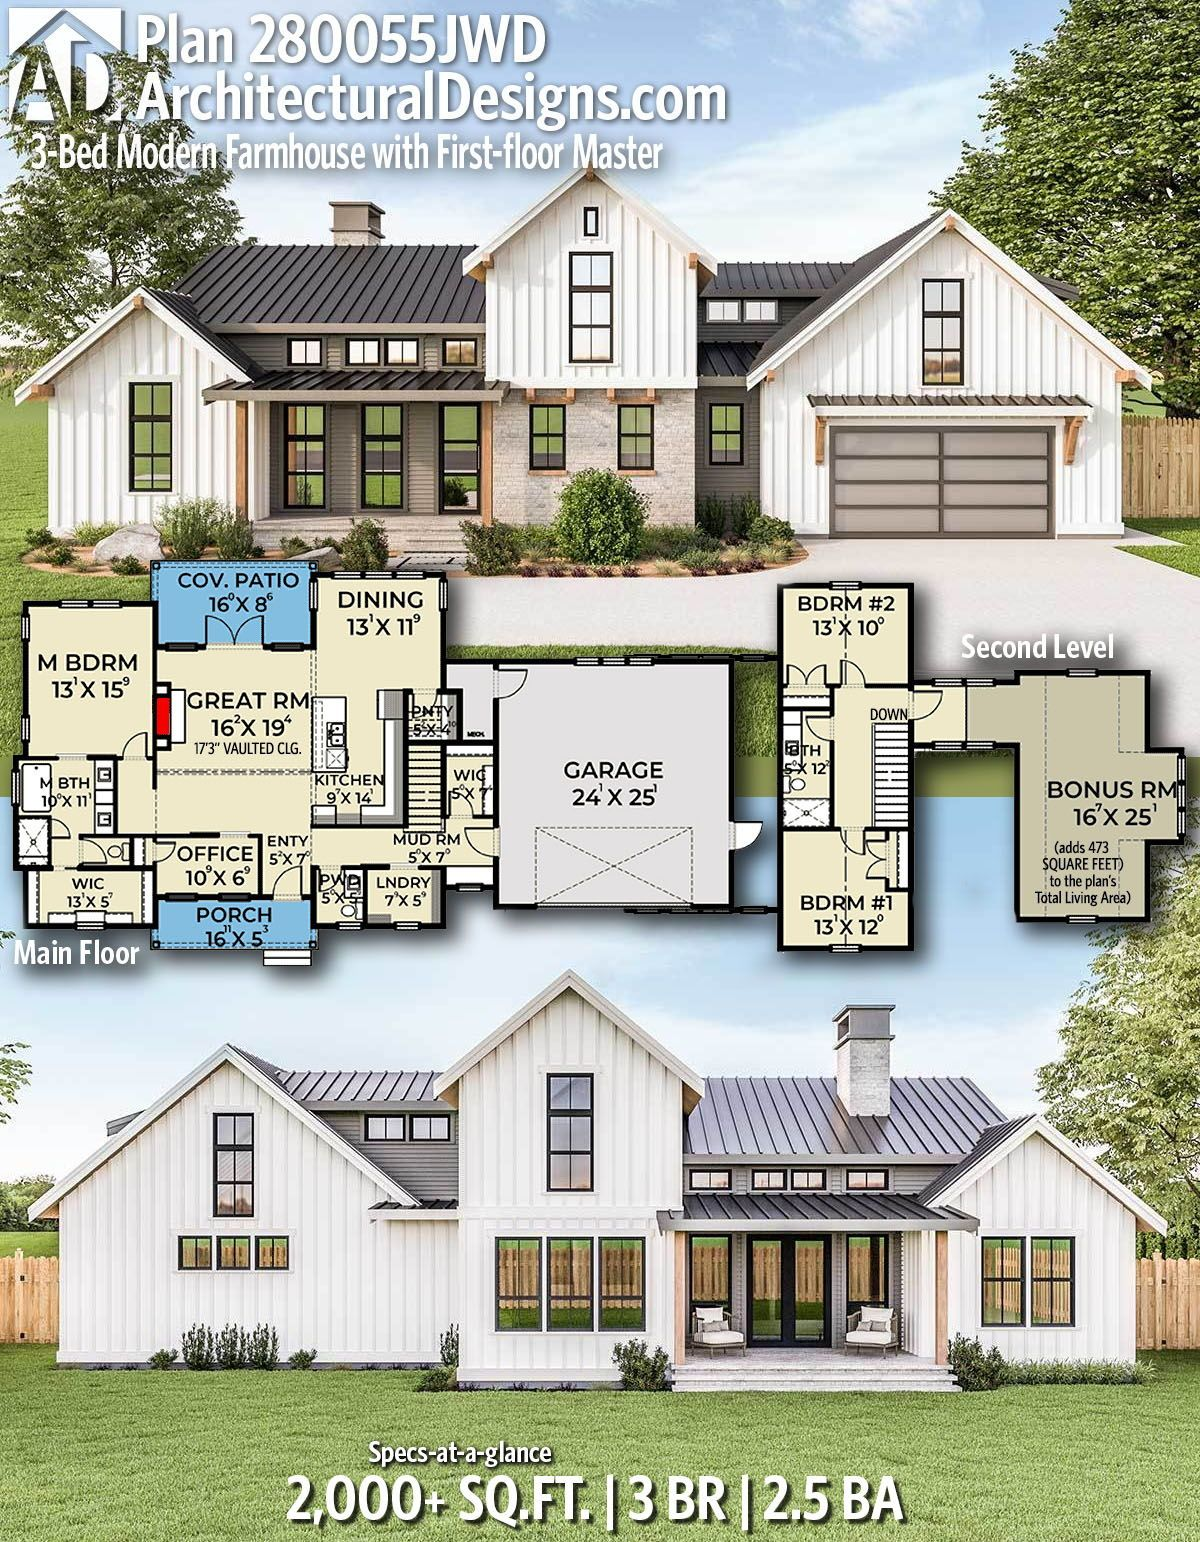 Plan 280055jwd 3 Bed Modern Farmhouse With First Floor Master House Plans Farmhouse Modern Farmhouse Plans Farmhouse Floor Plans